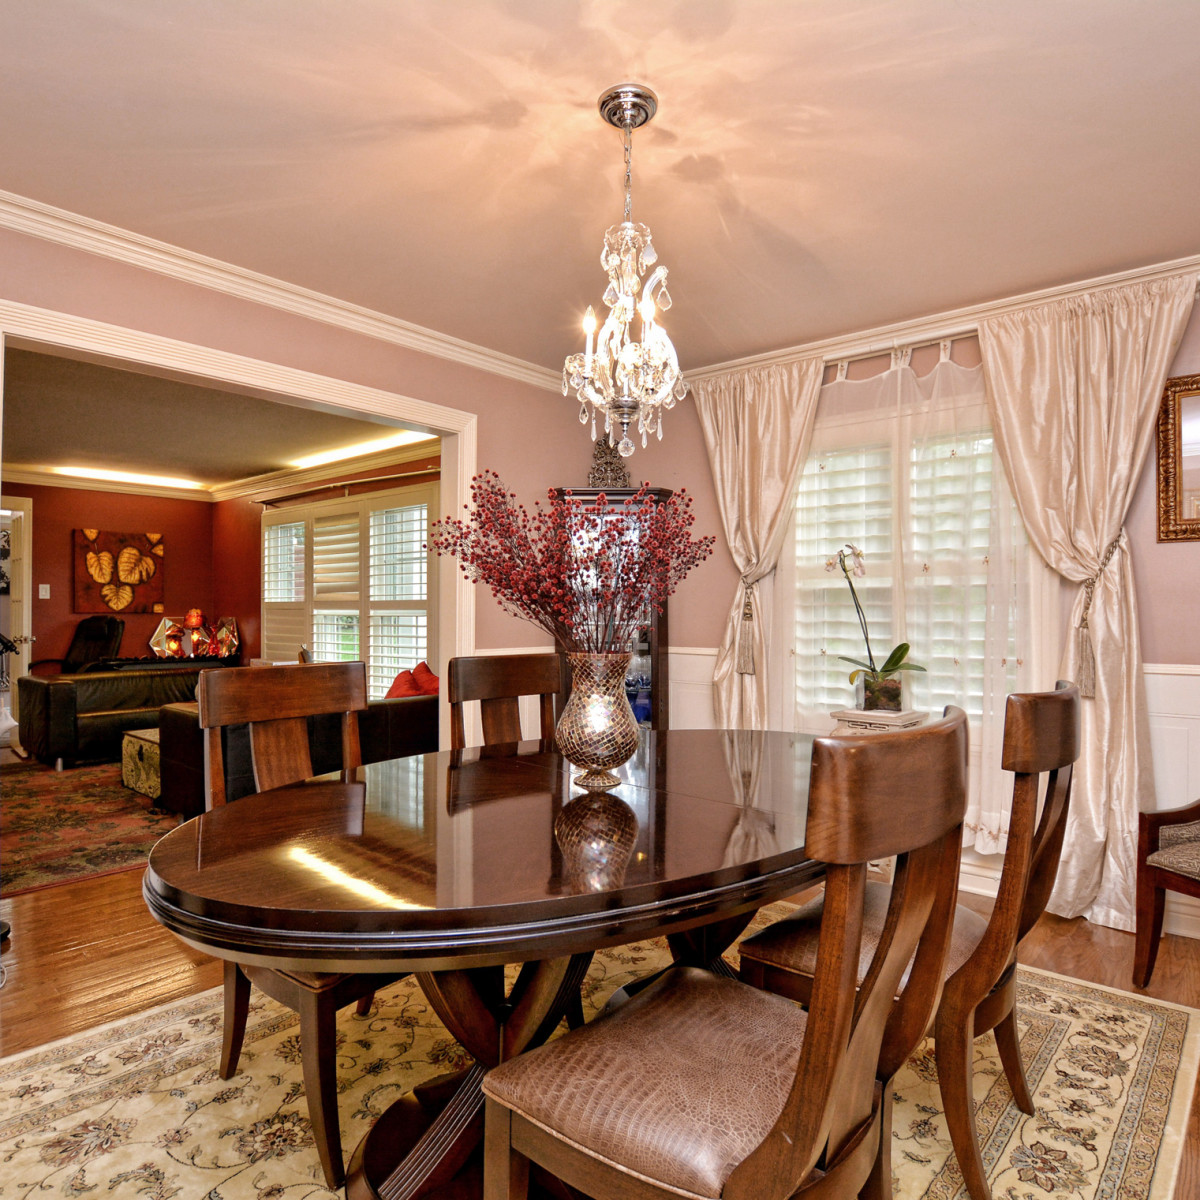 227 Treasure Way San Antonio house for sale dining room